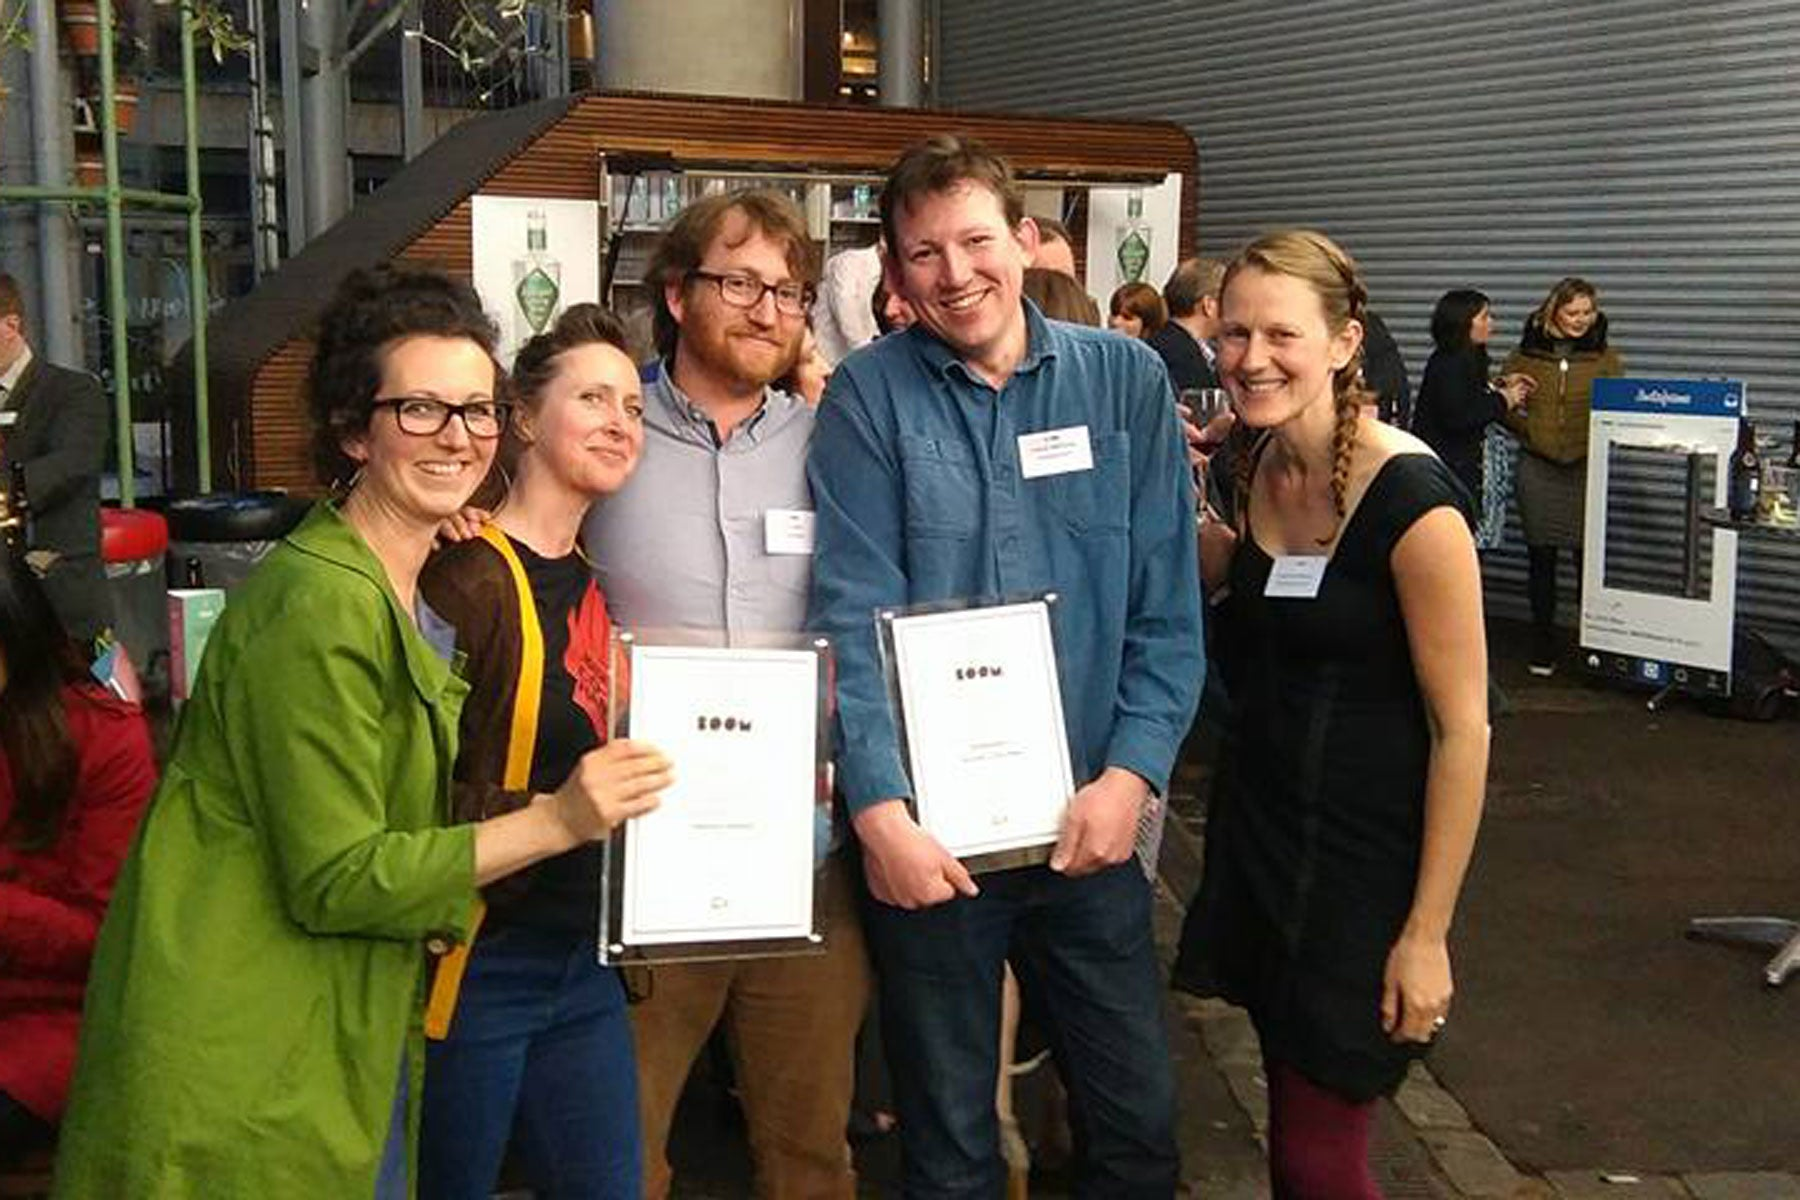 Josiah and Joe with our BOOM Award and friends from Unicorn Grocery